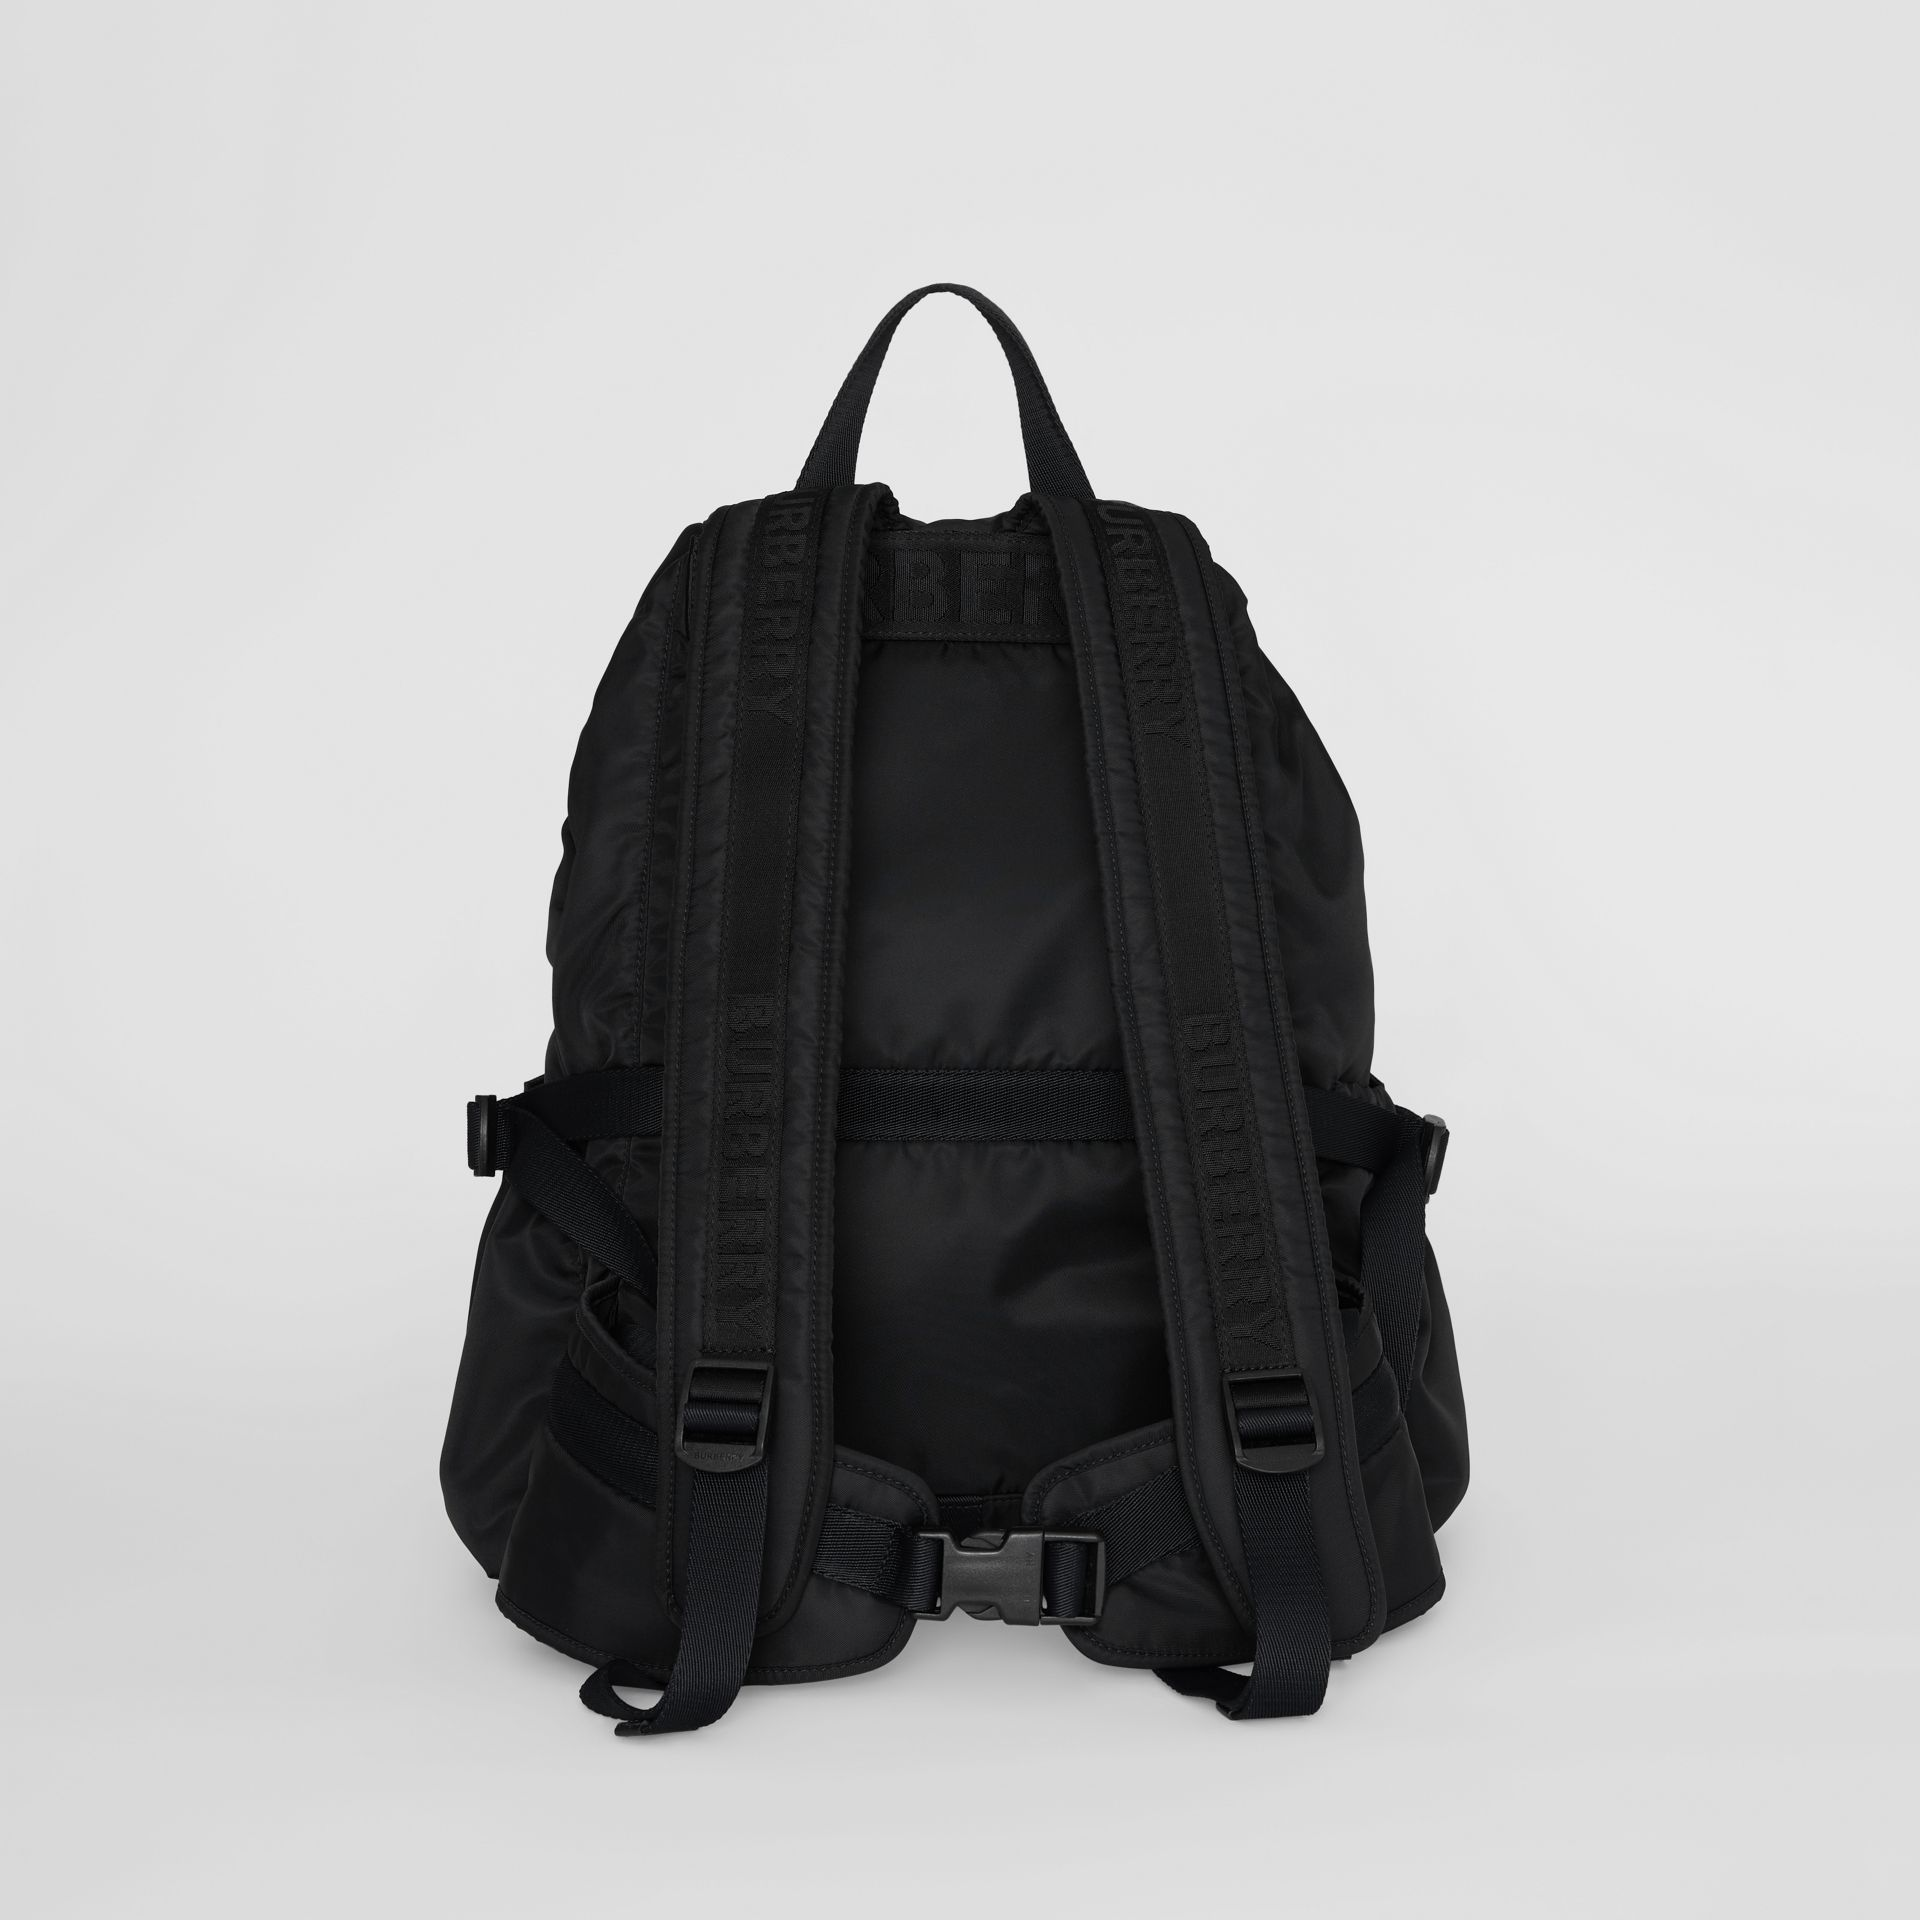 Logo Print Nylon Backpack in Black - Women | Burberry Singapore - gallery image 7